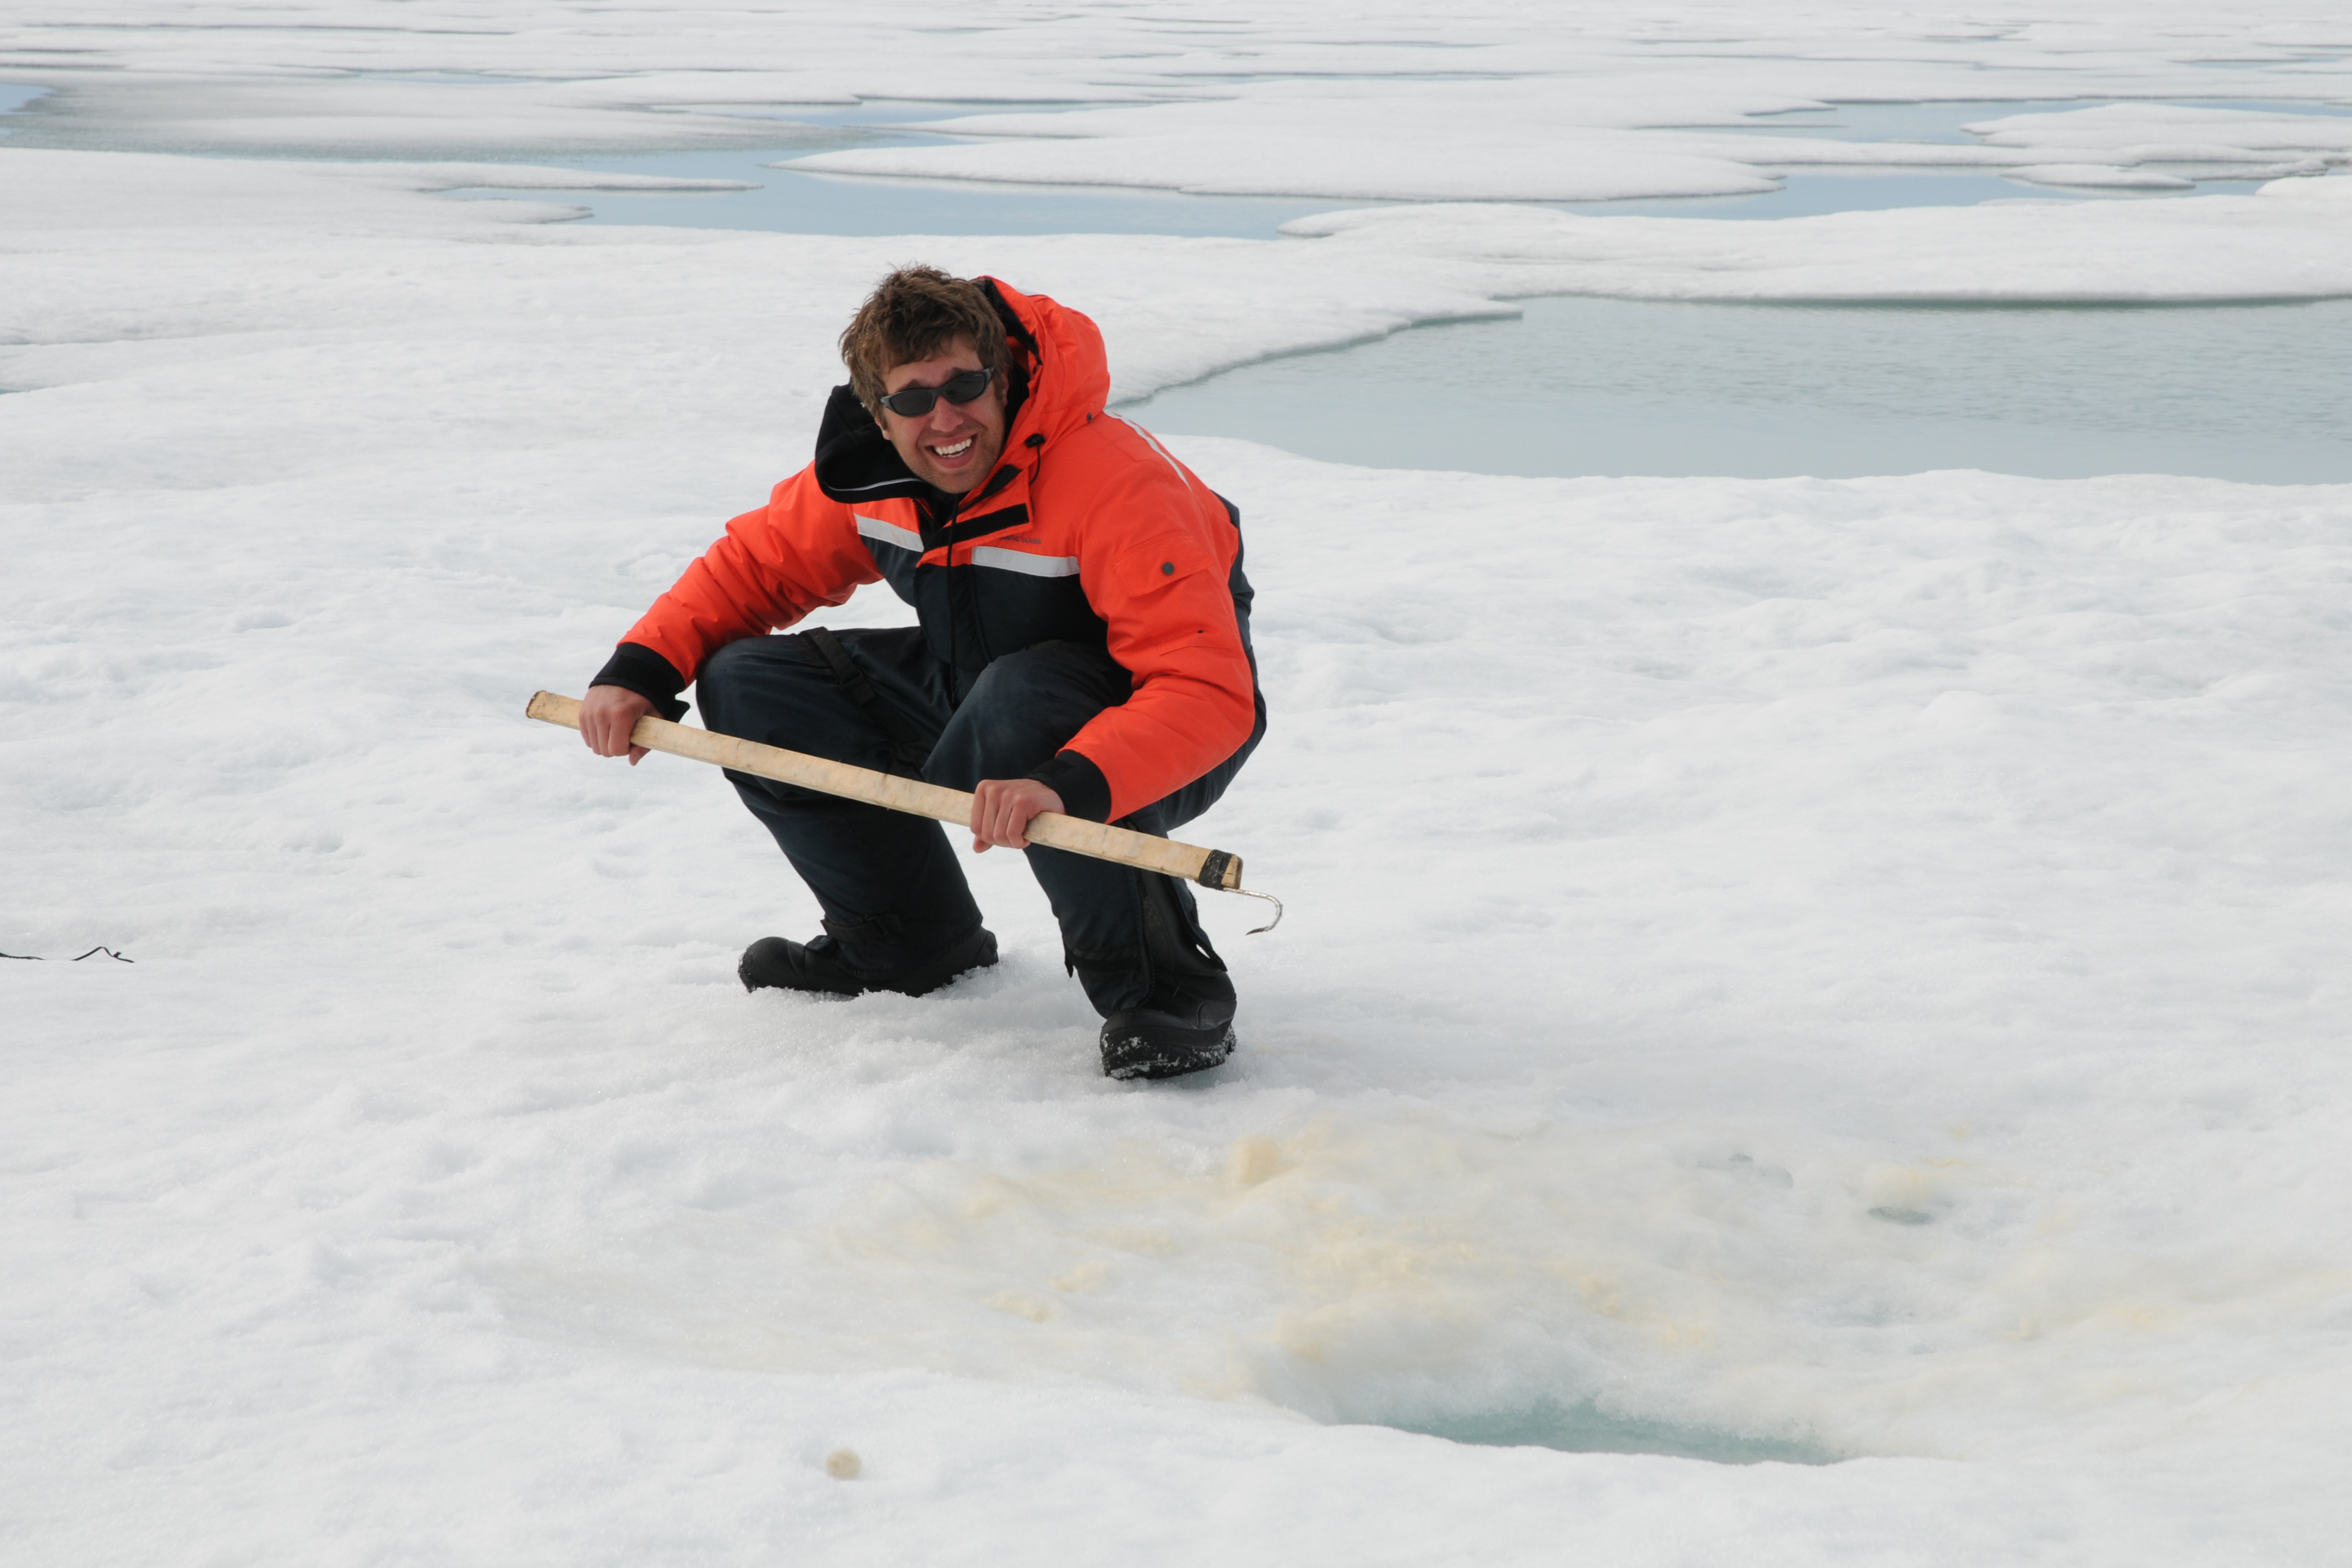 Student finds climate change impacts ringed seal behavior